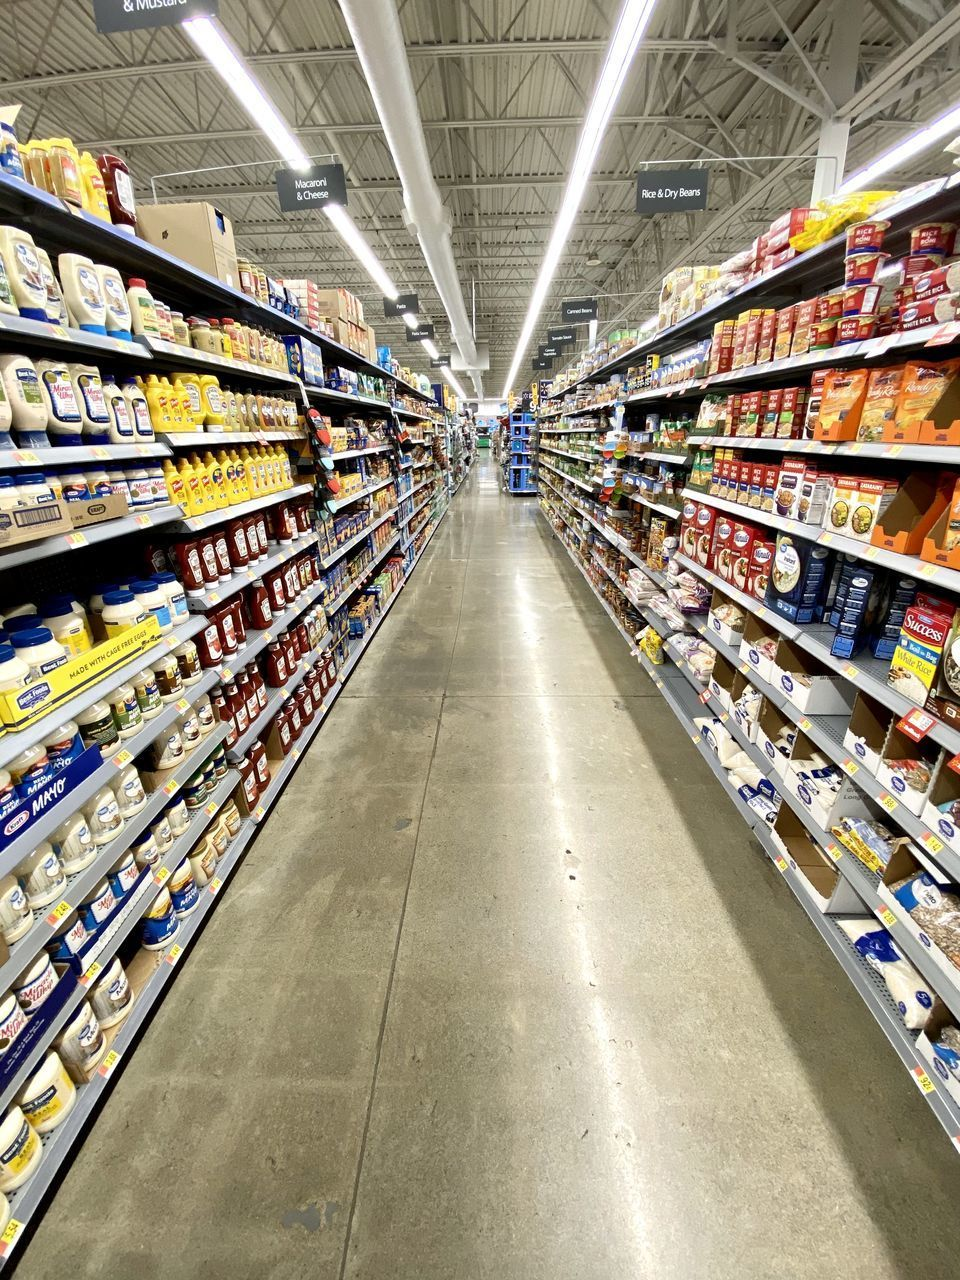 supermarket, store, retail, shopping, choice, shelf, consumerism, variation, food and drink, indoors, food, aisle, abundance, groceries, no people, order, large group of objects, market, shopping cart, arrangement, flooring, diminishing perspective, tiled floor, ceiling